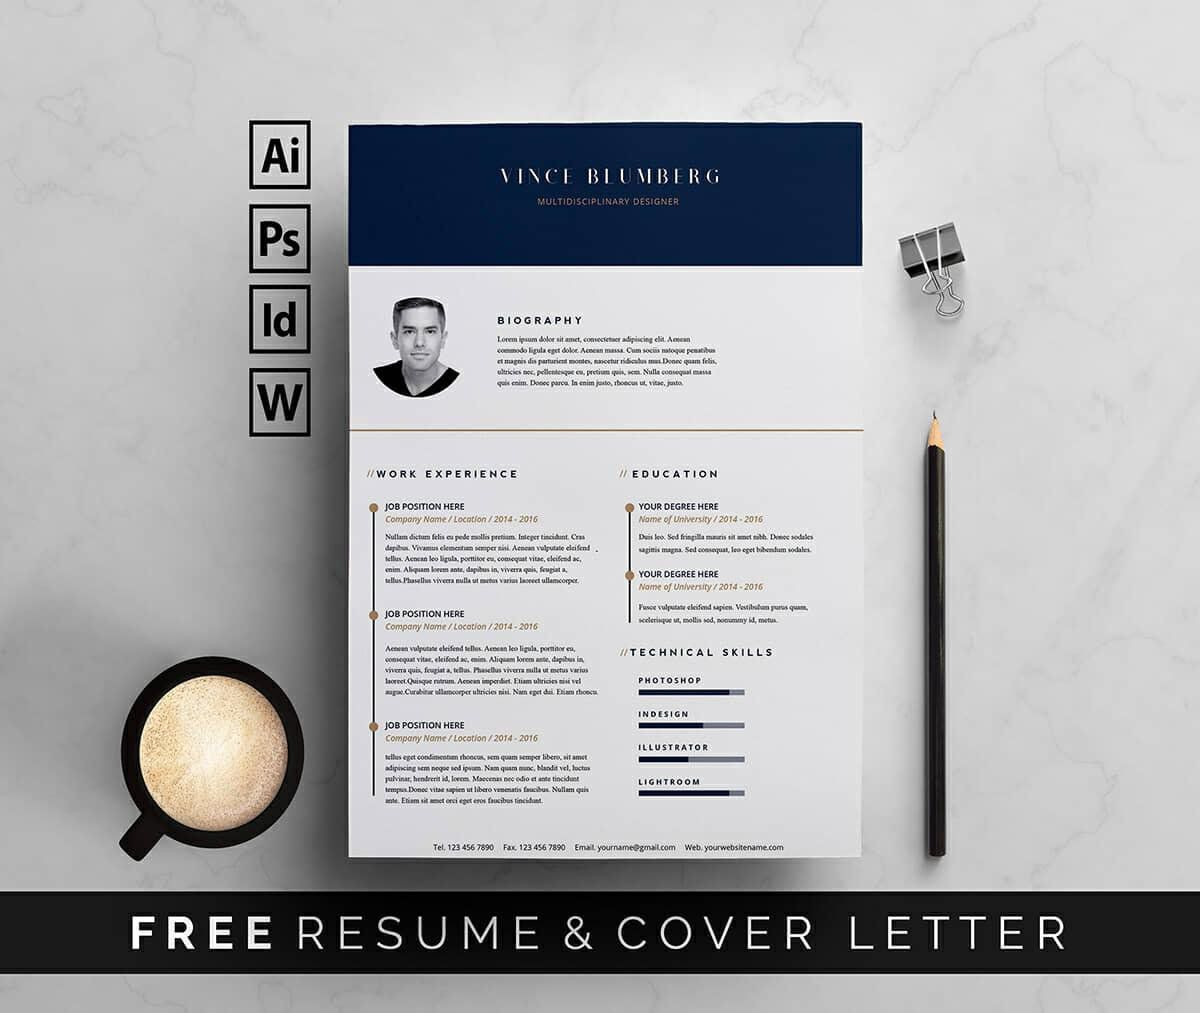 009 Dreaded Resume Template Free Word Picture  Download Cv 2020 FormatFull